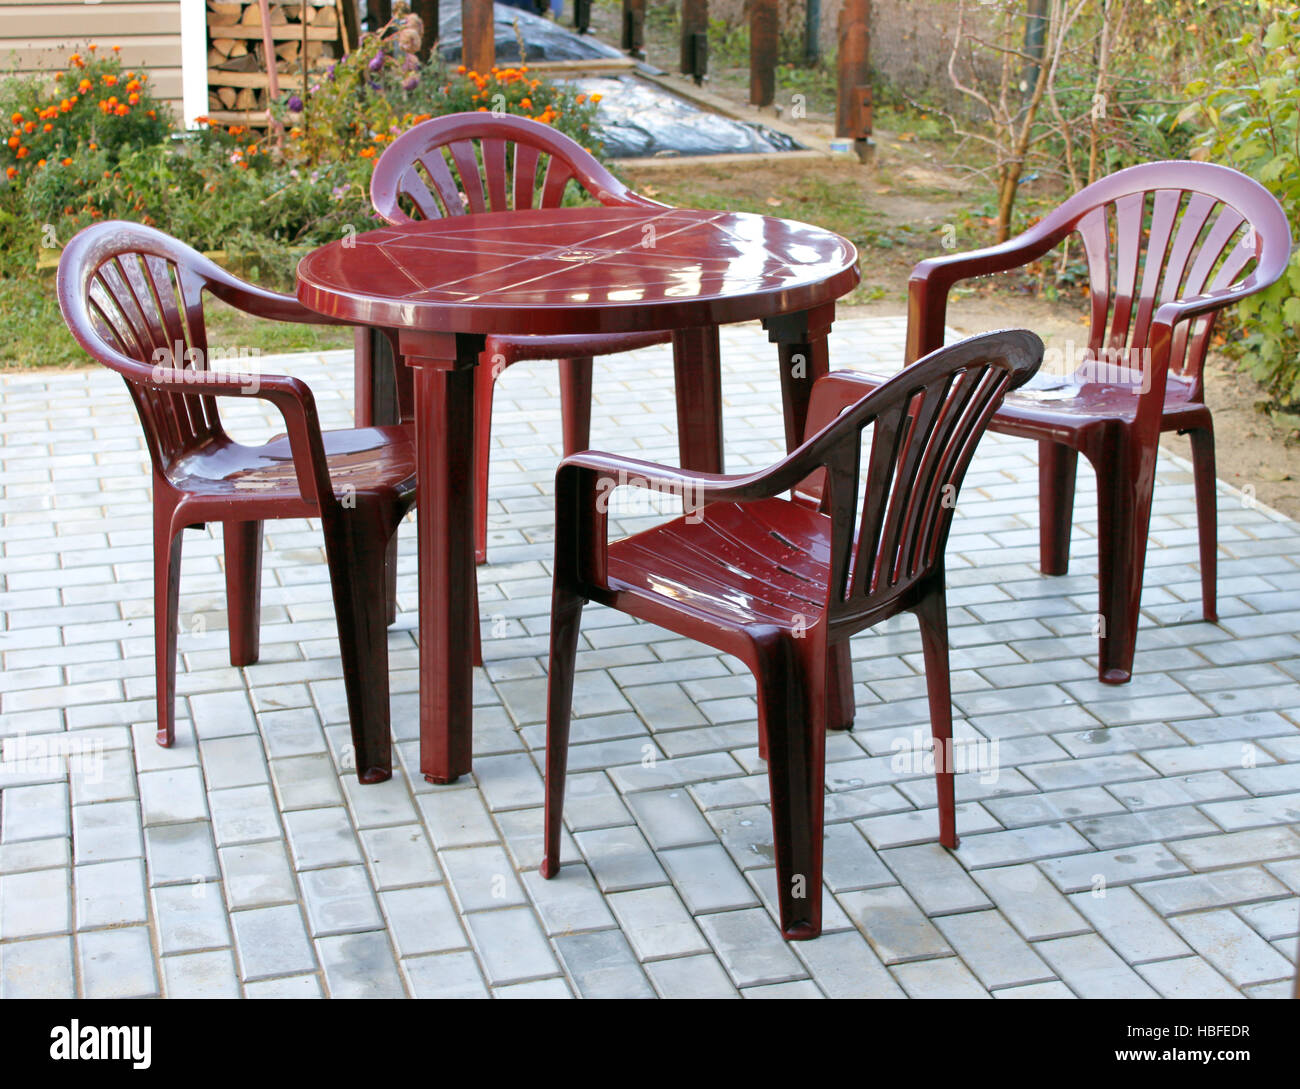 Plastic Patio Furniture Stock Photos Plastic Patio Furniture Stock